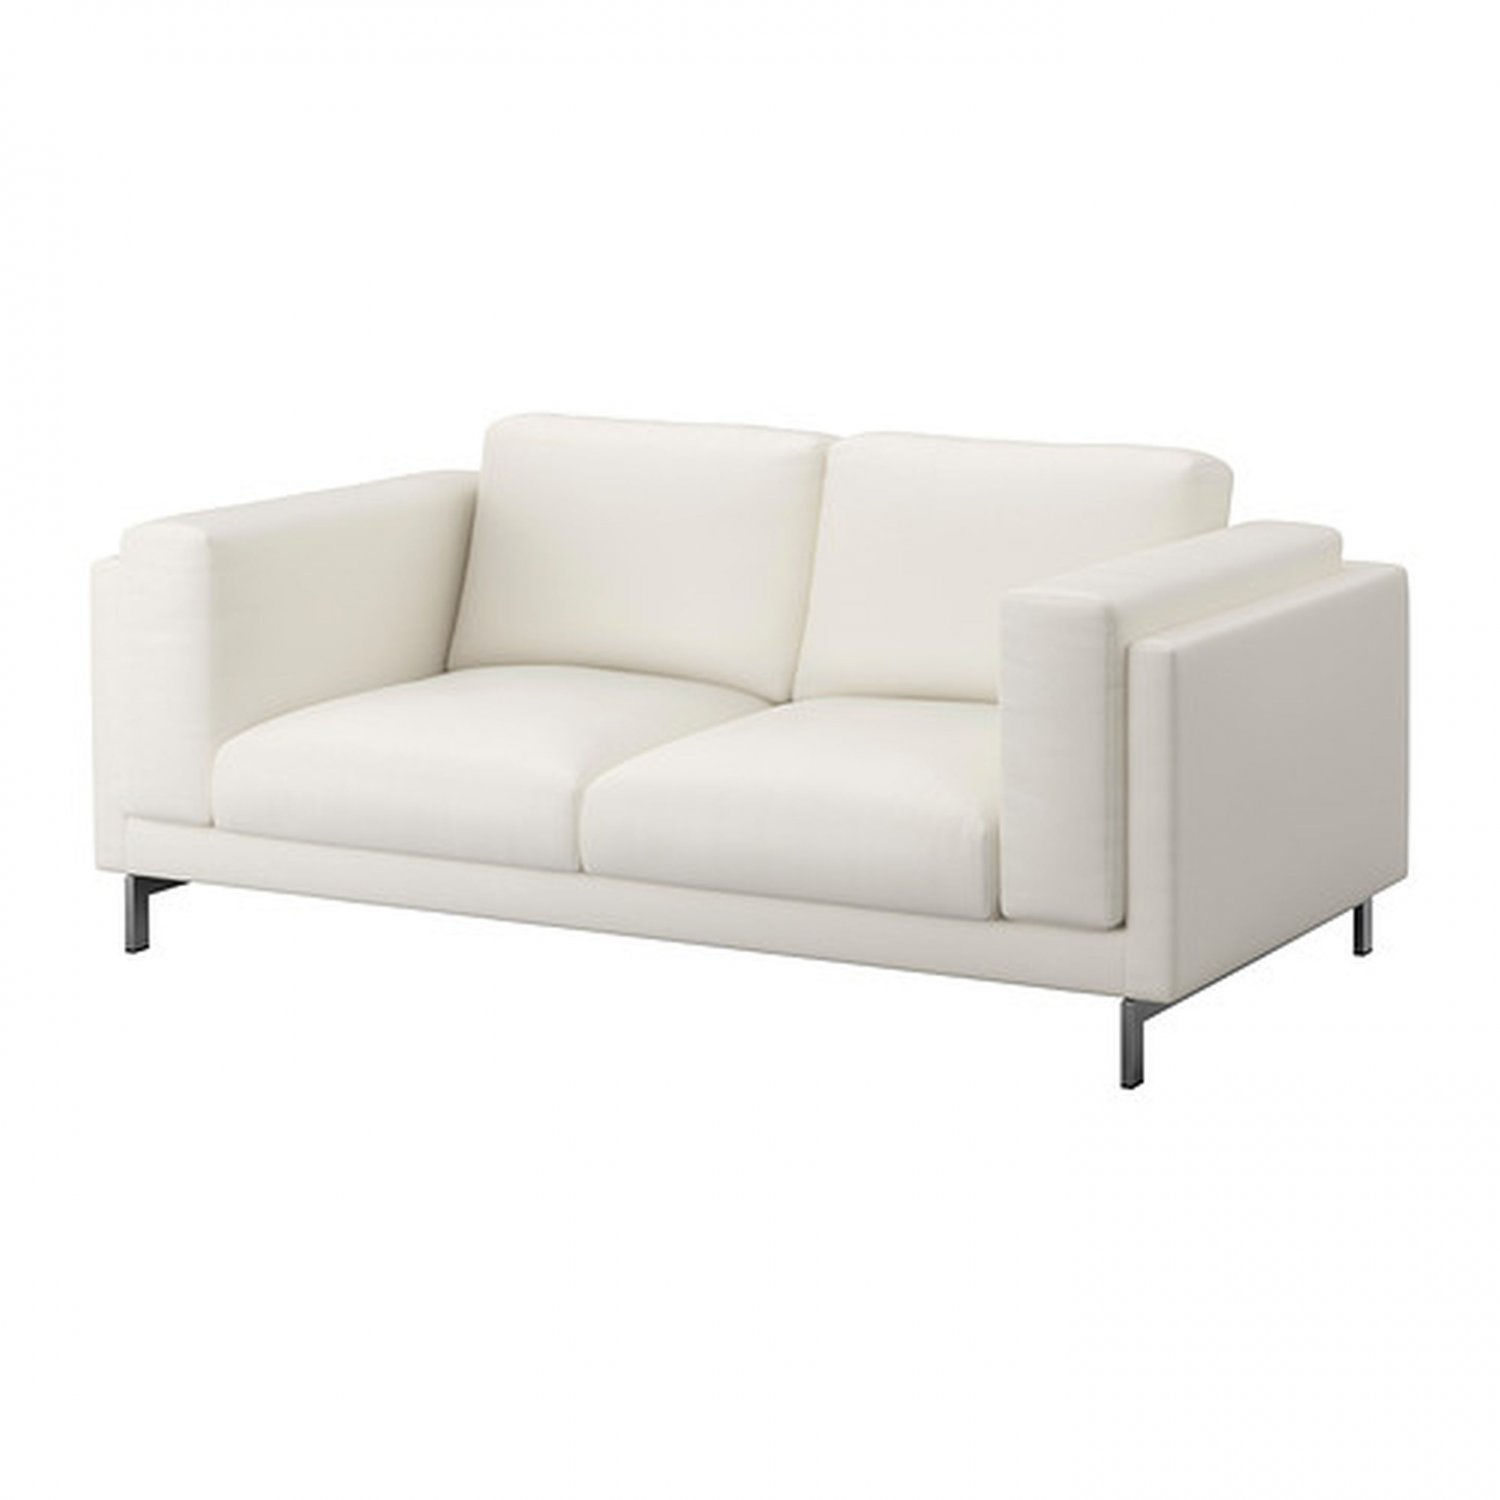 Ikea Nockeby 2 Seat Sofa Slipcover Loveseat Cover Risane White Linen Blend